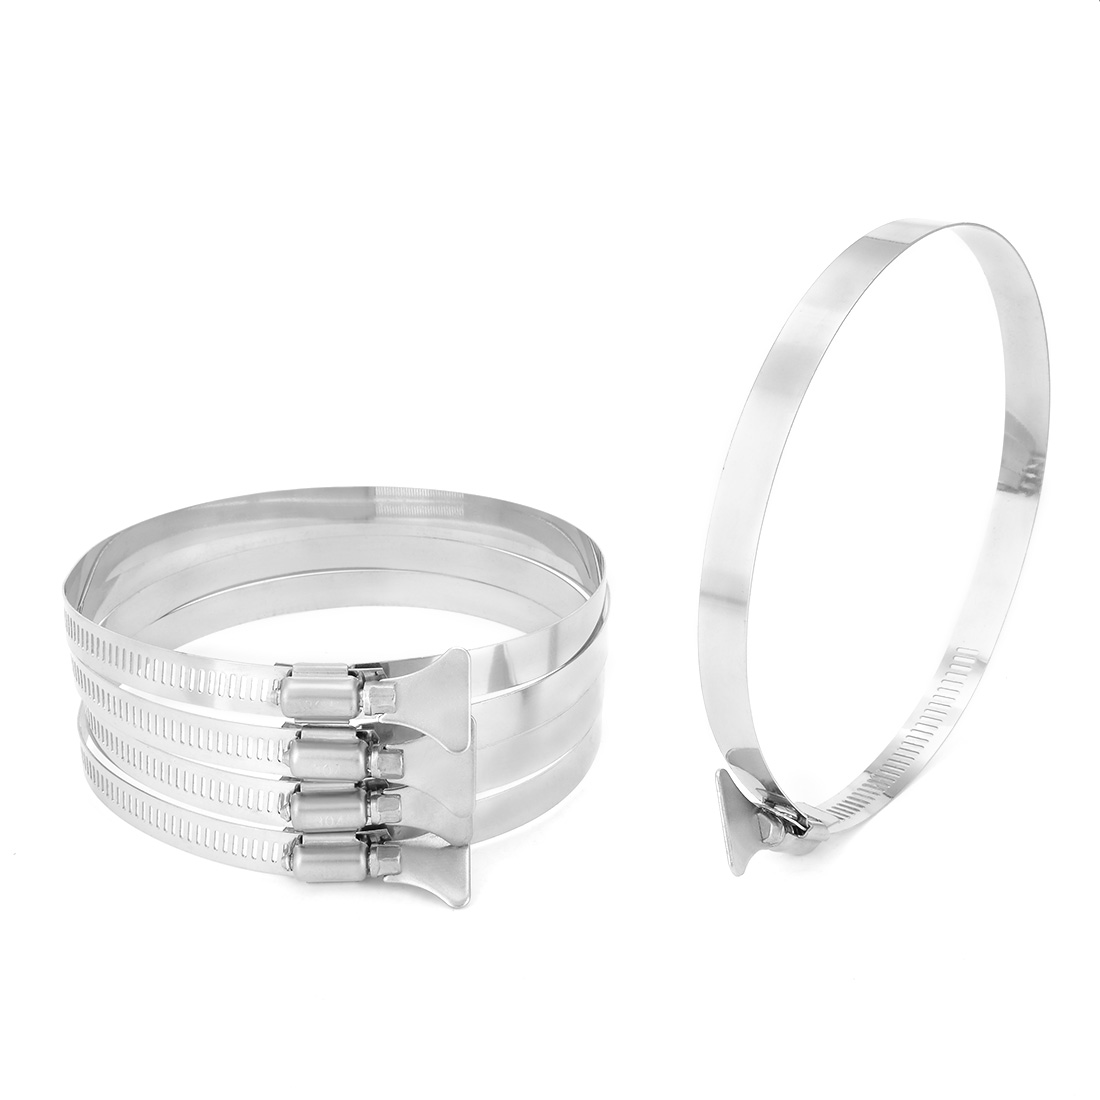 105mm-127mm Clamping Range 304 Stainless Steel Butterfly Hose Clamp 5pcs